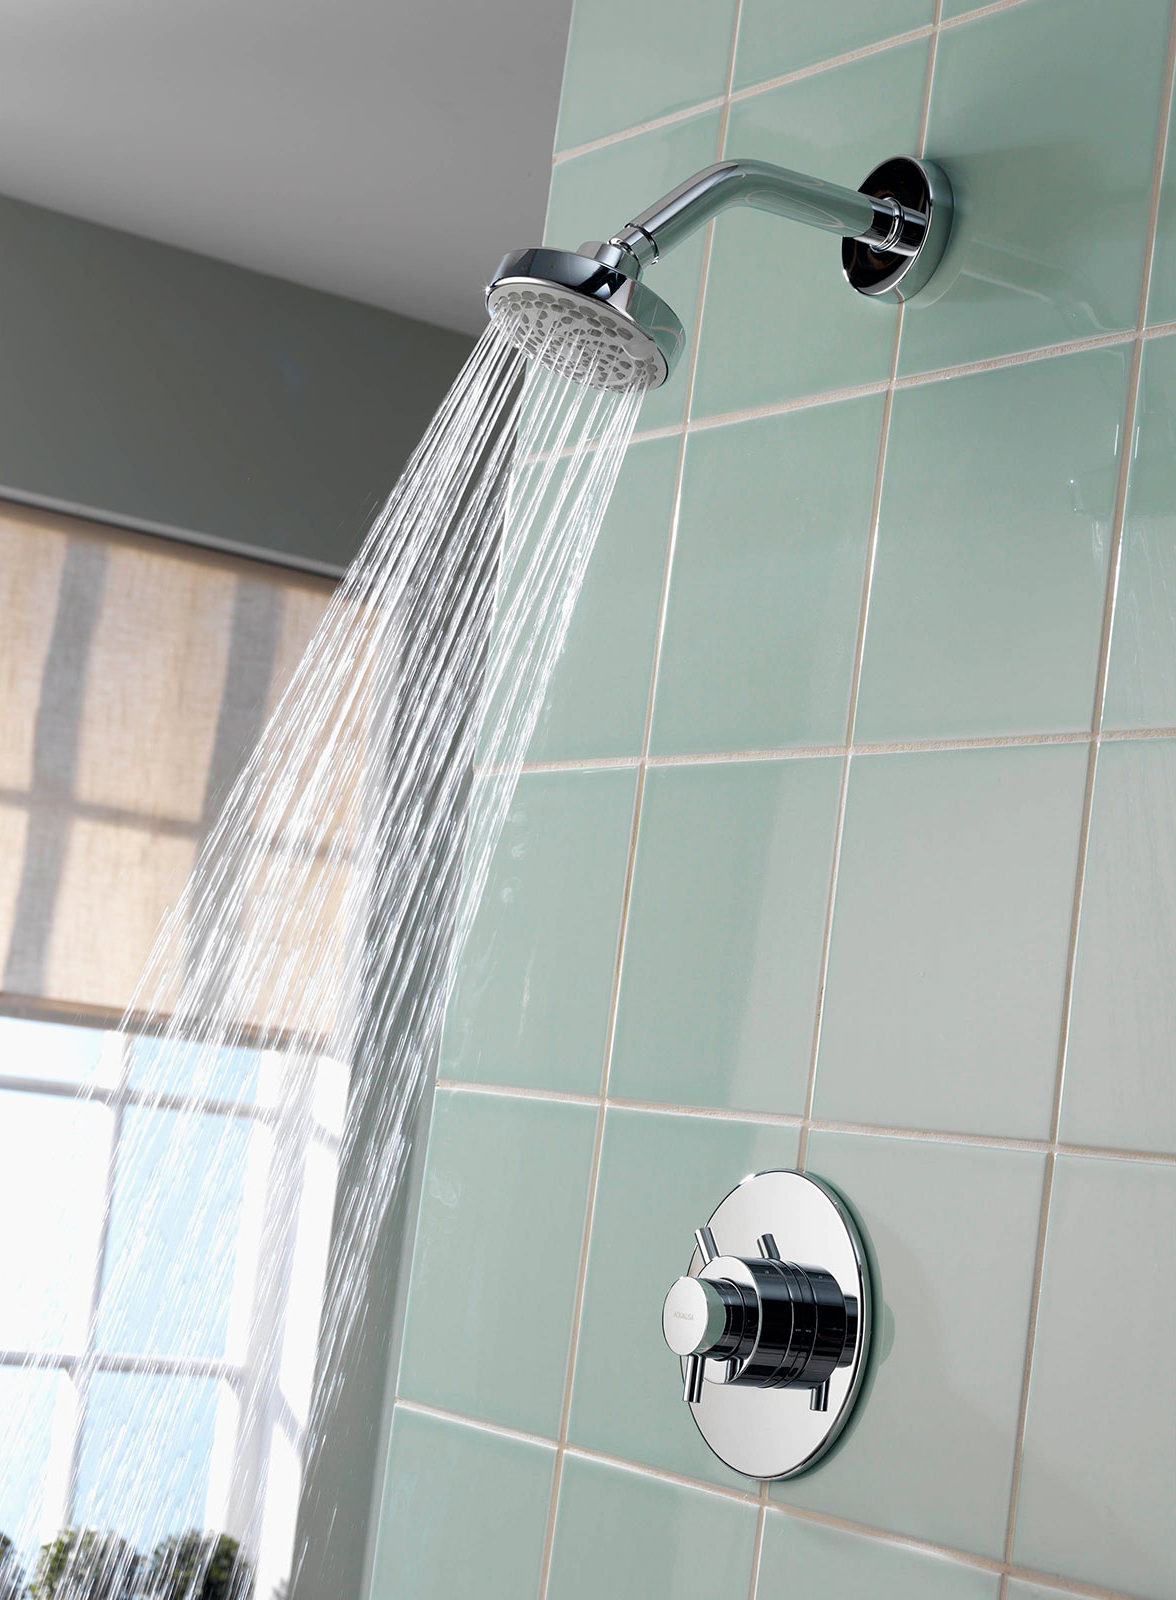 Aqualisa Aspire Dl Concealed Thermostatic Shower Mixer